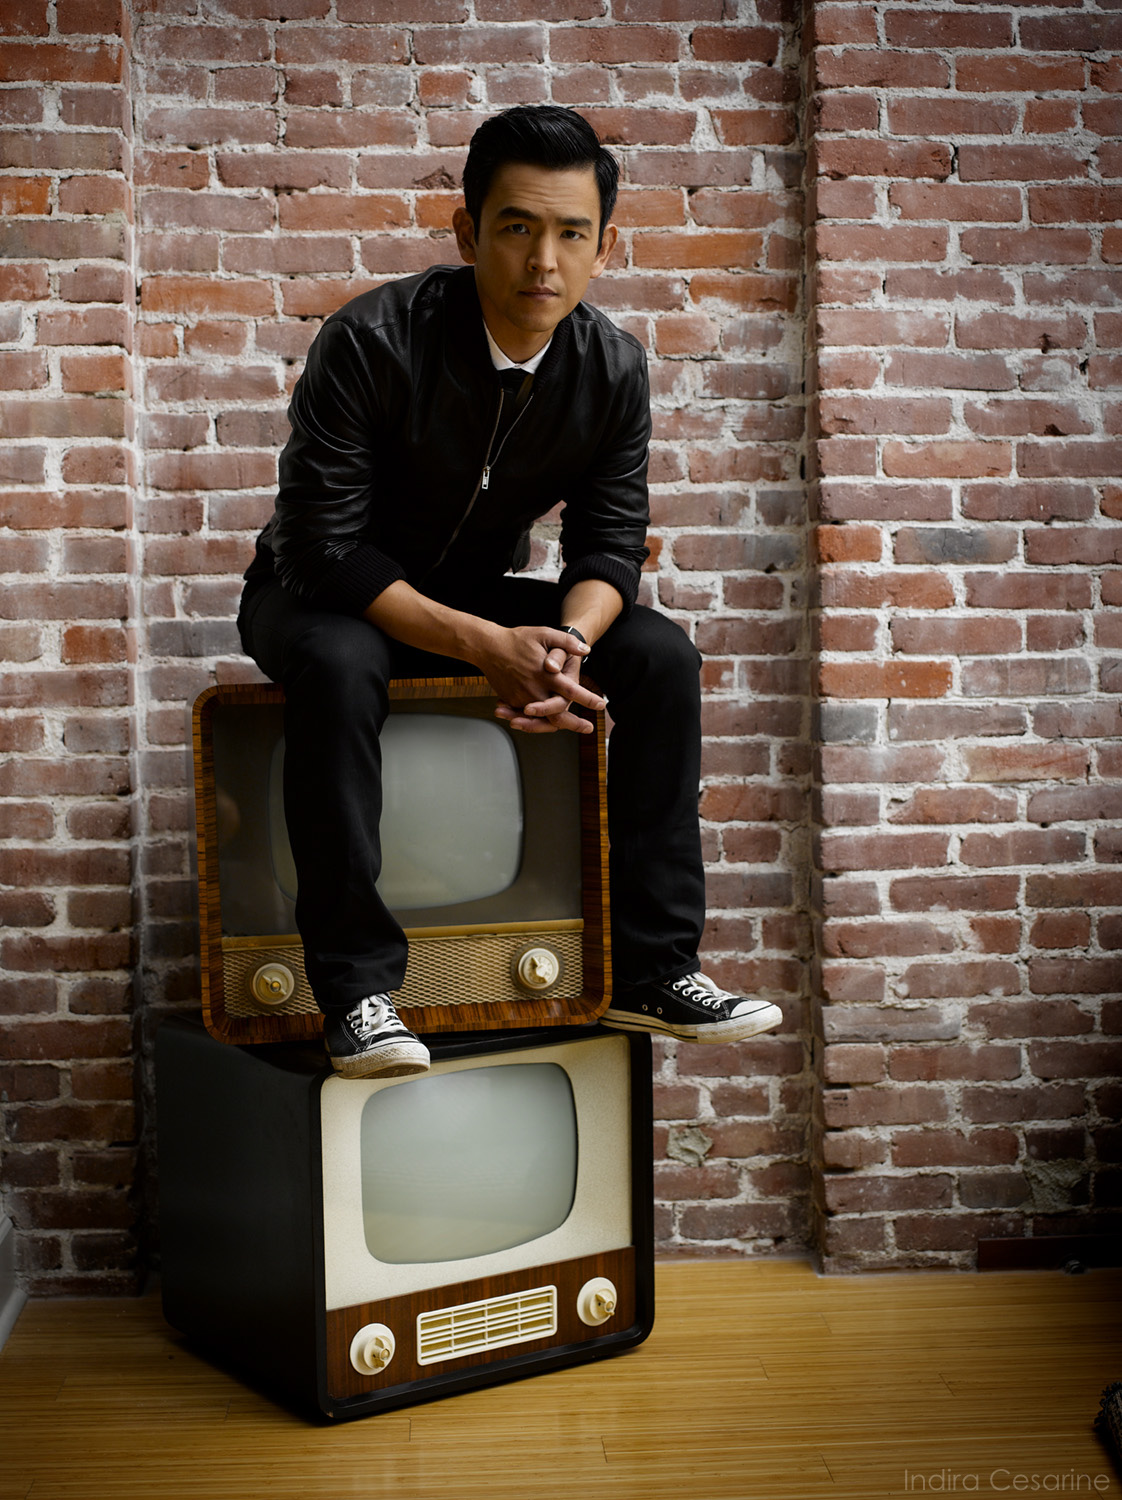 John-Cho-Photography-by-Indira-Cesarine-017.jpg